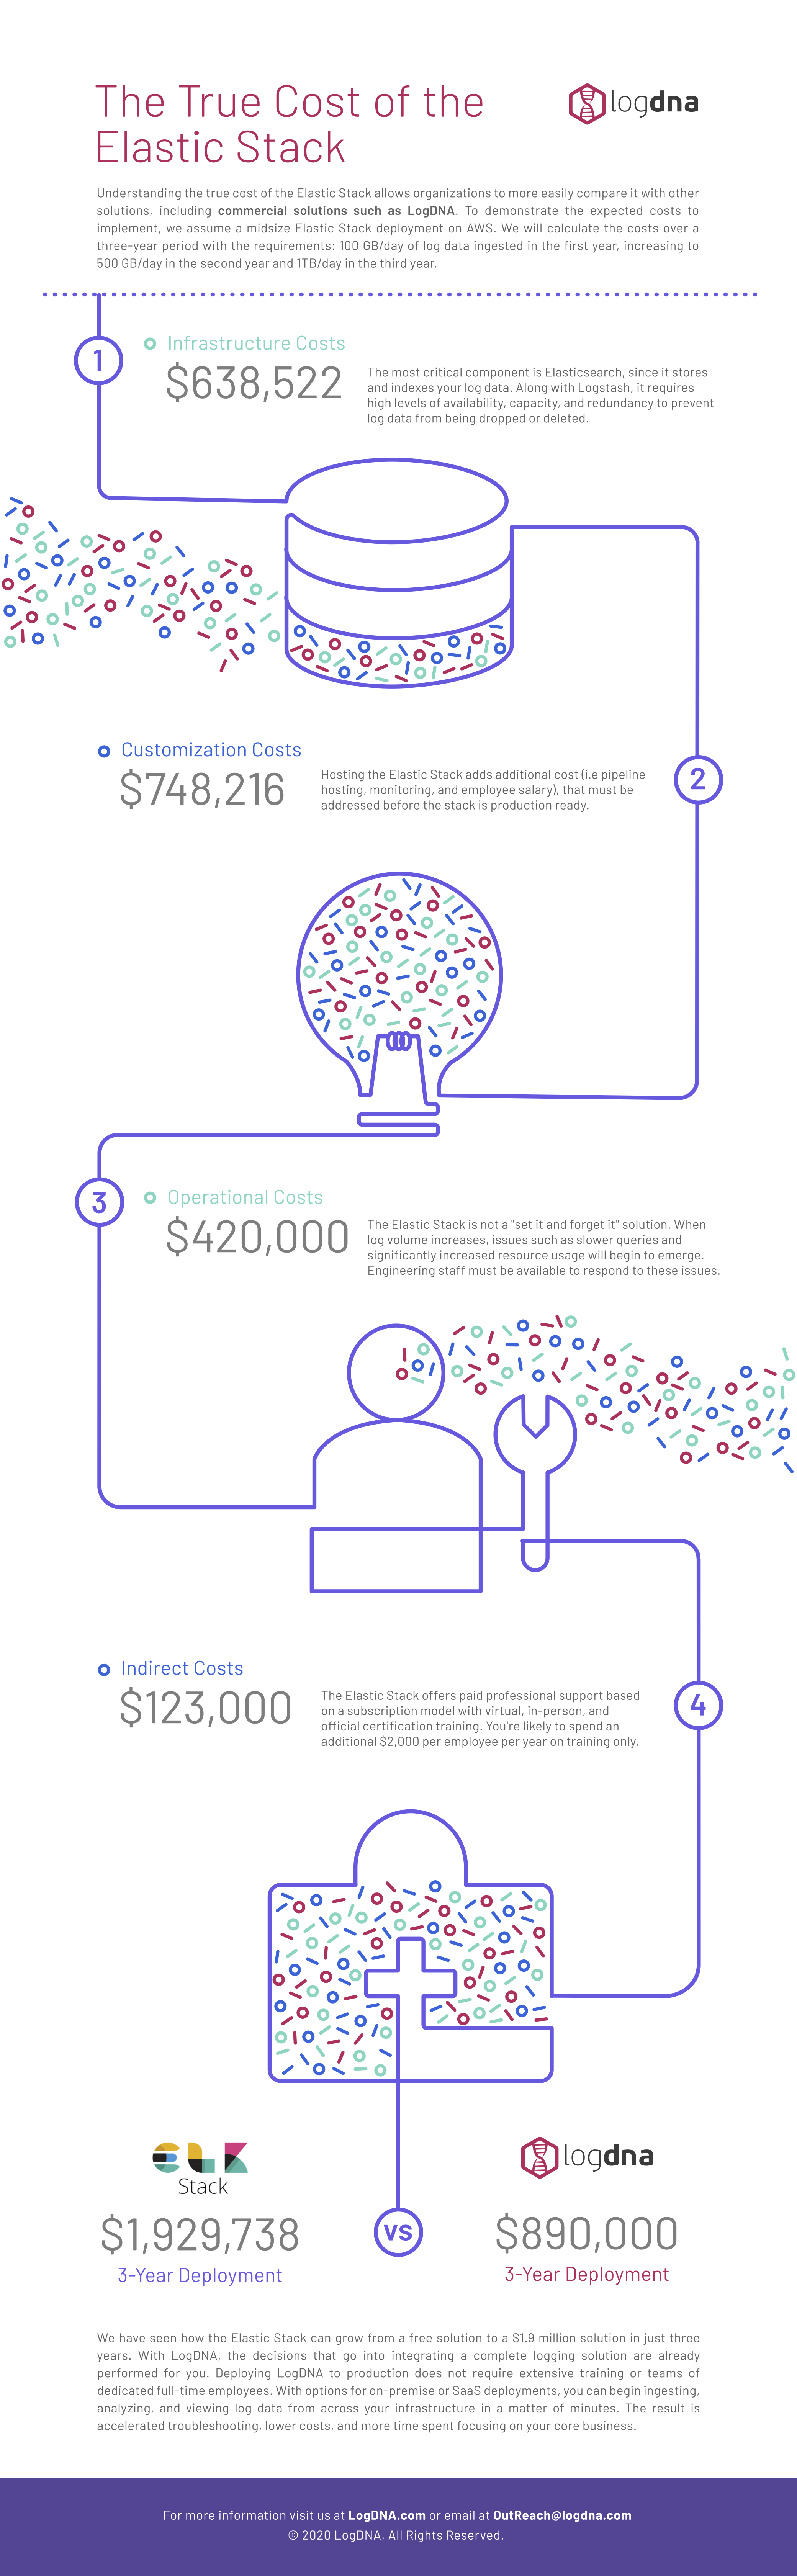 The True Cost of ELastic Stack